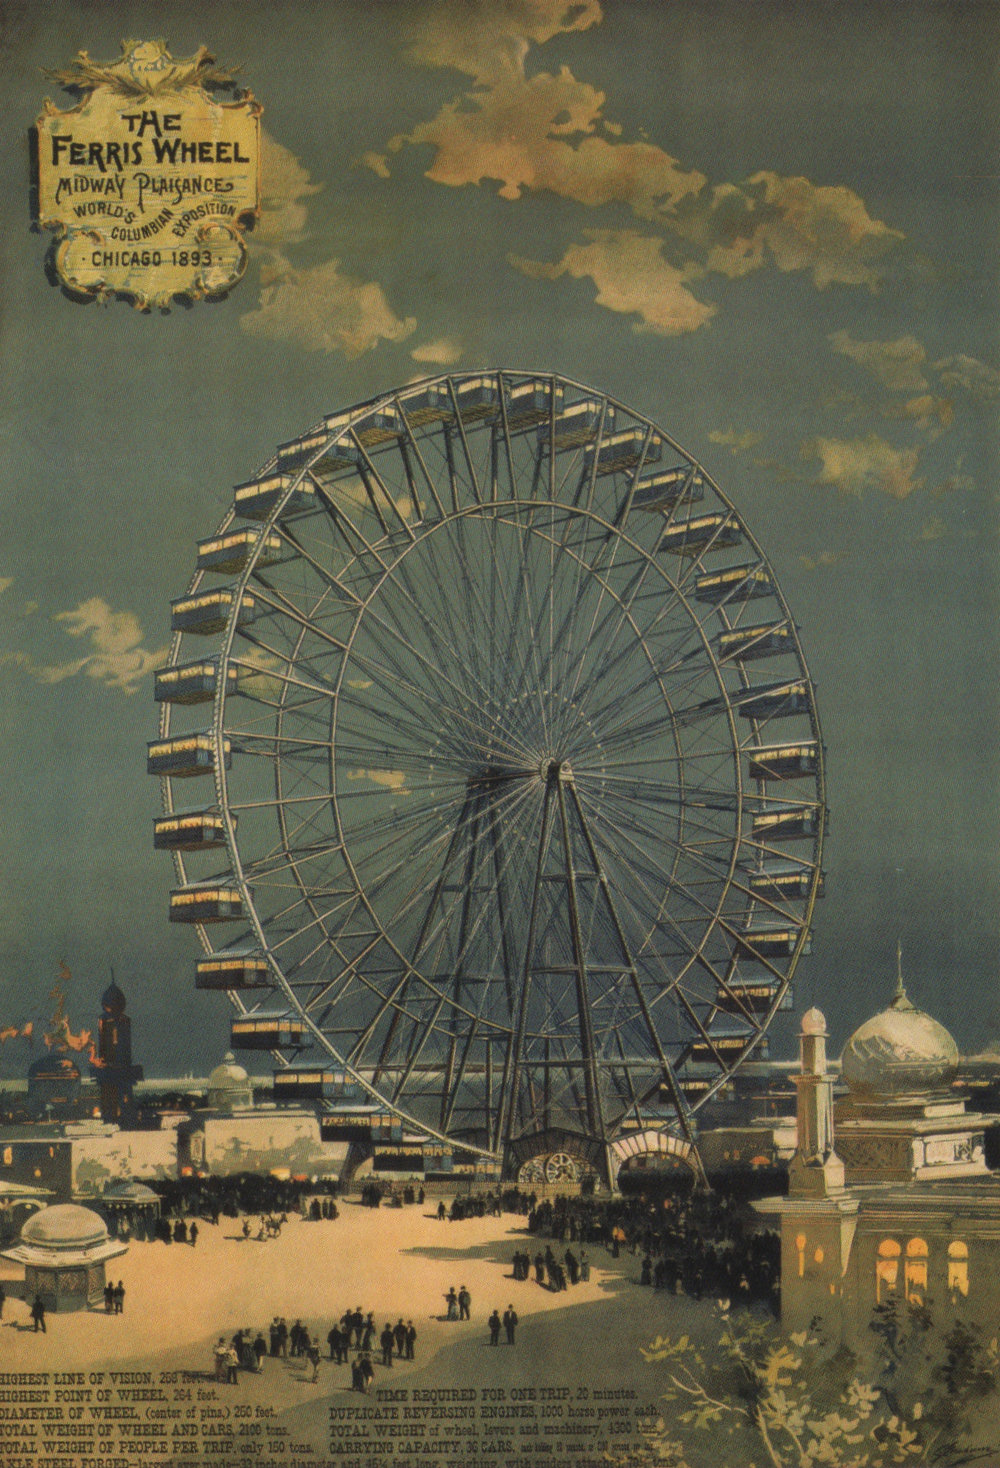 Ferris Wheel poster, scanned from the book   The White City: Chicago's World's Columbian Exposition of 1893   by the Chicago History Museum